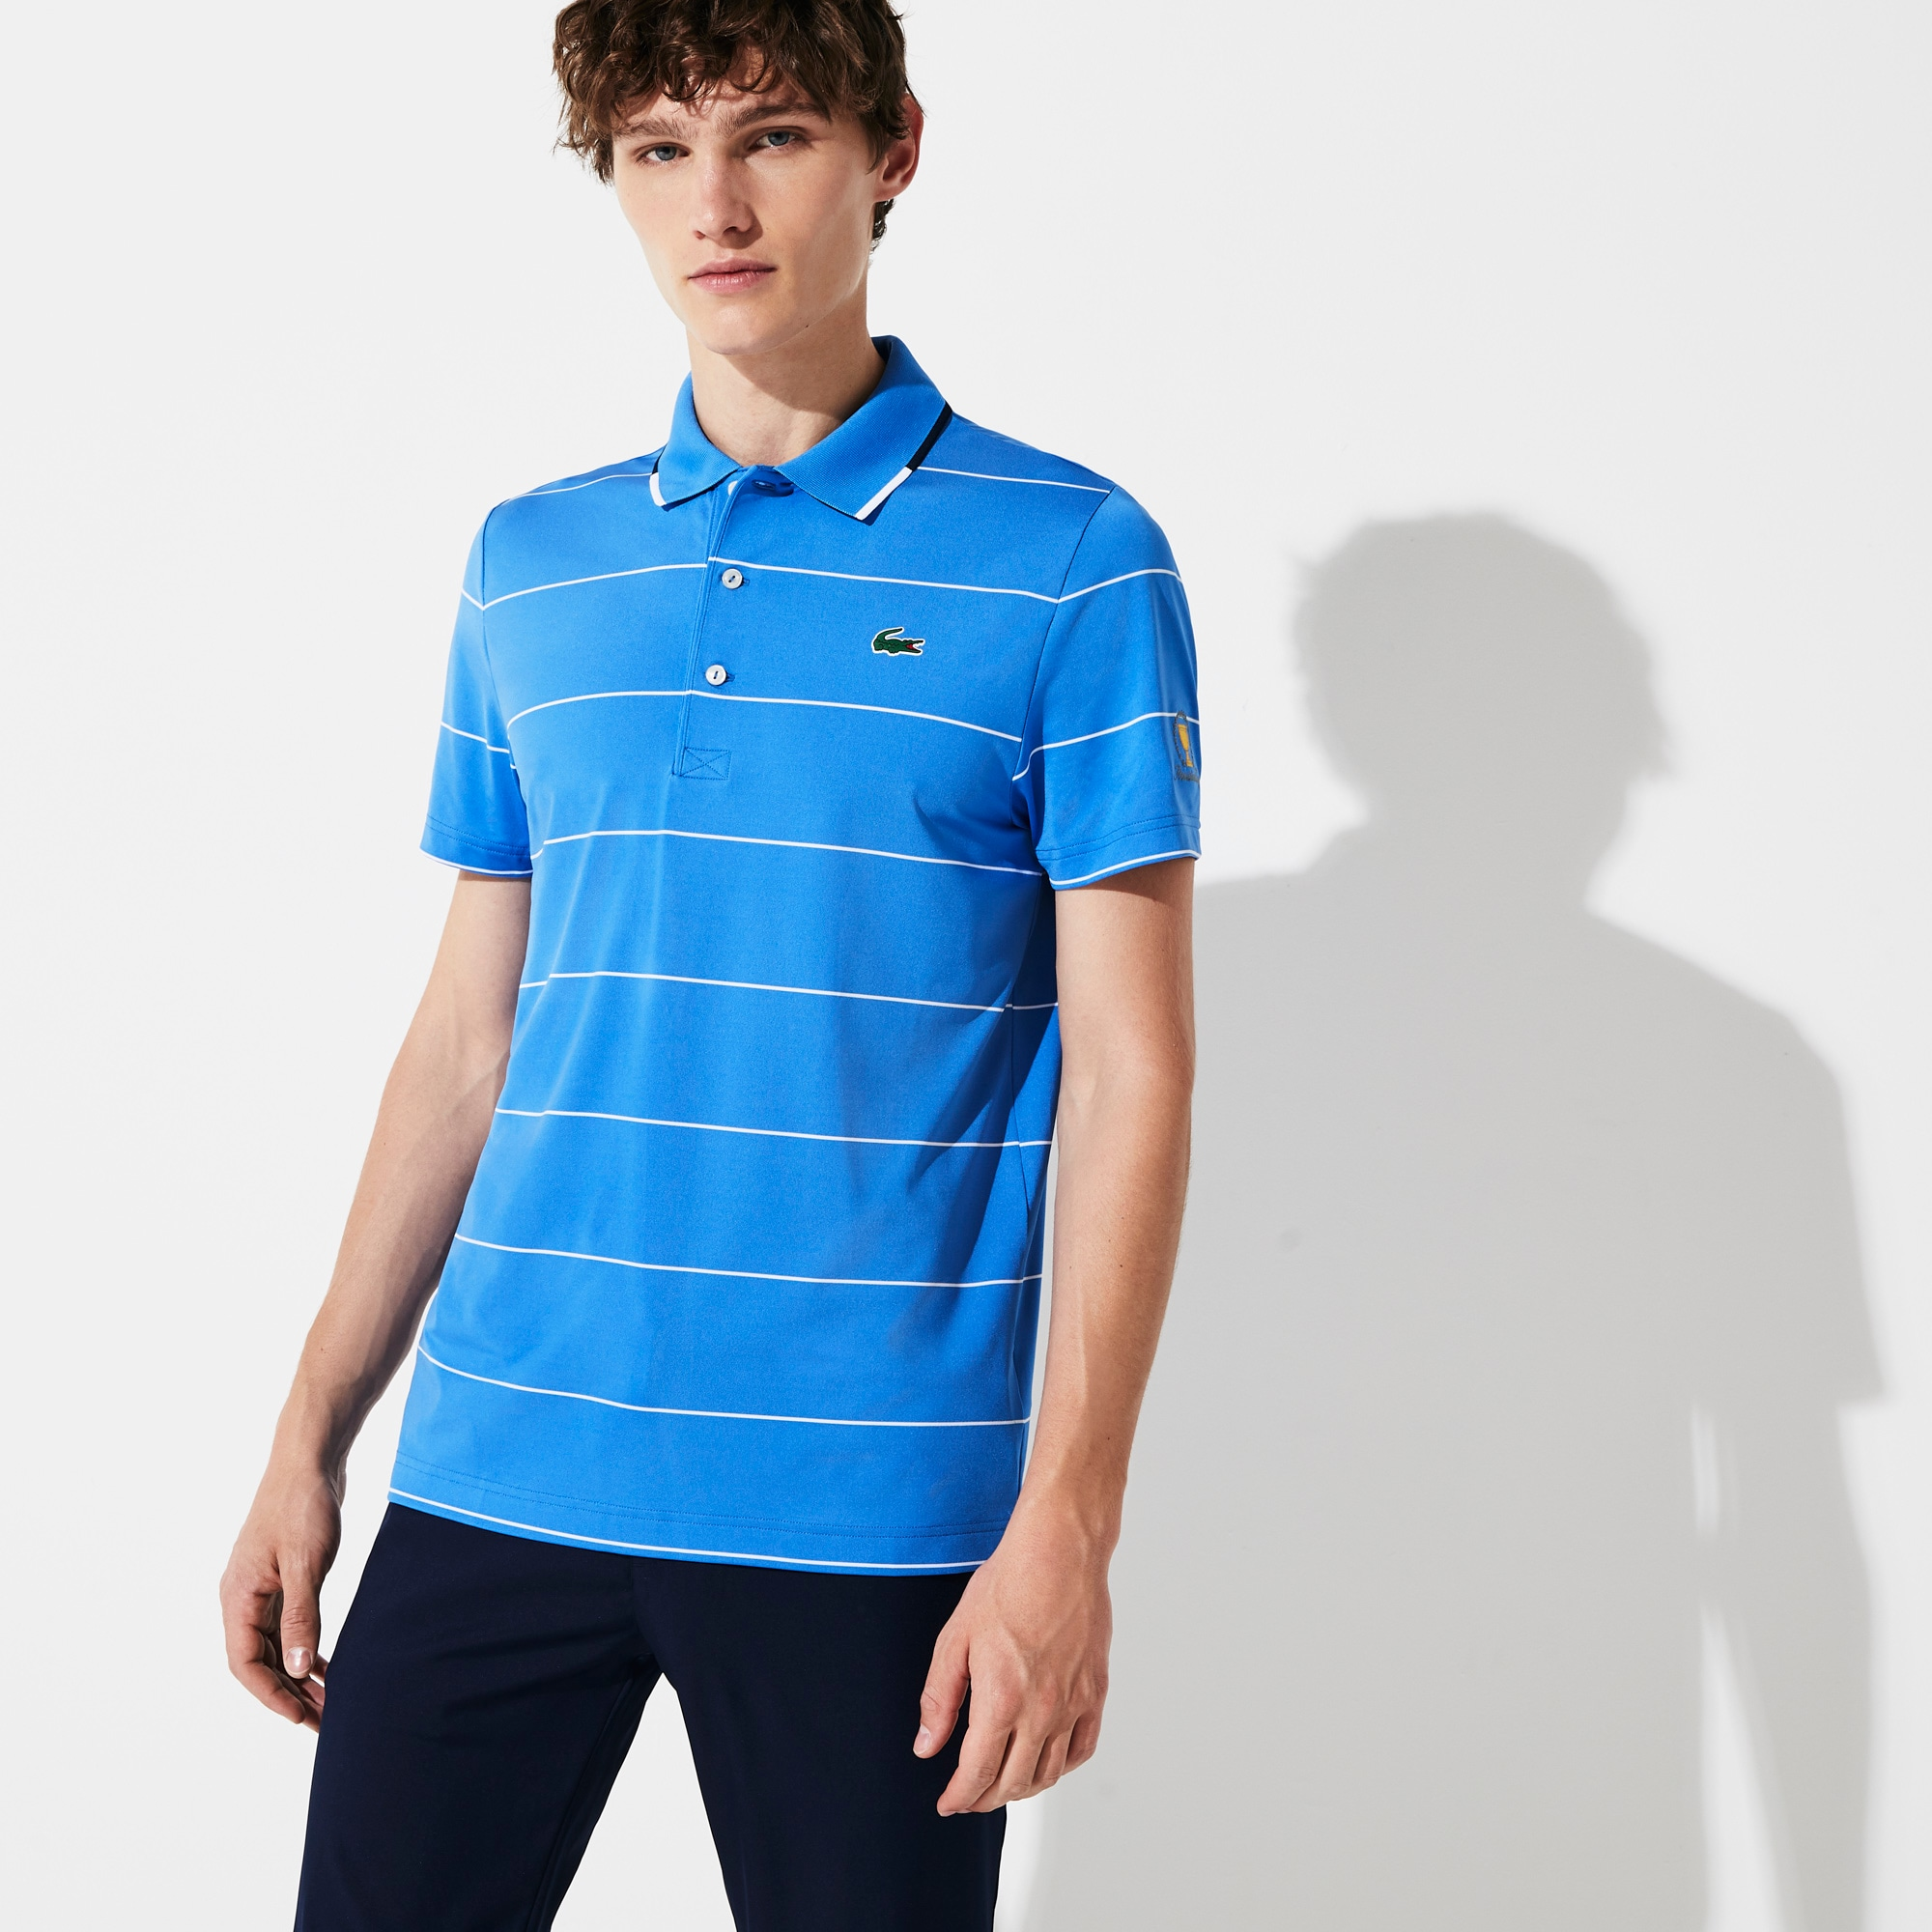 Lacoste Shirts Men's Presidents Cup Striped Breathable Stretch Jersey Golf Polo Shirt